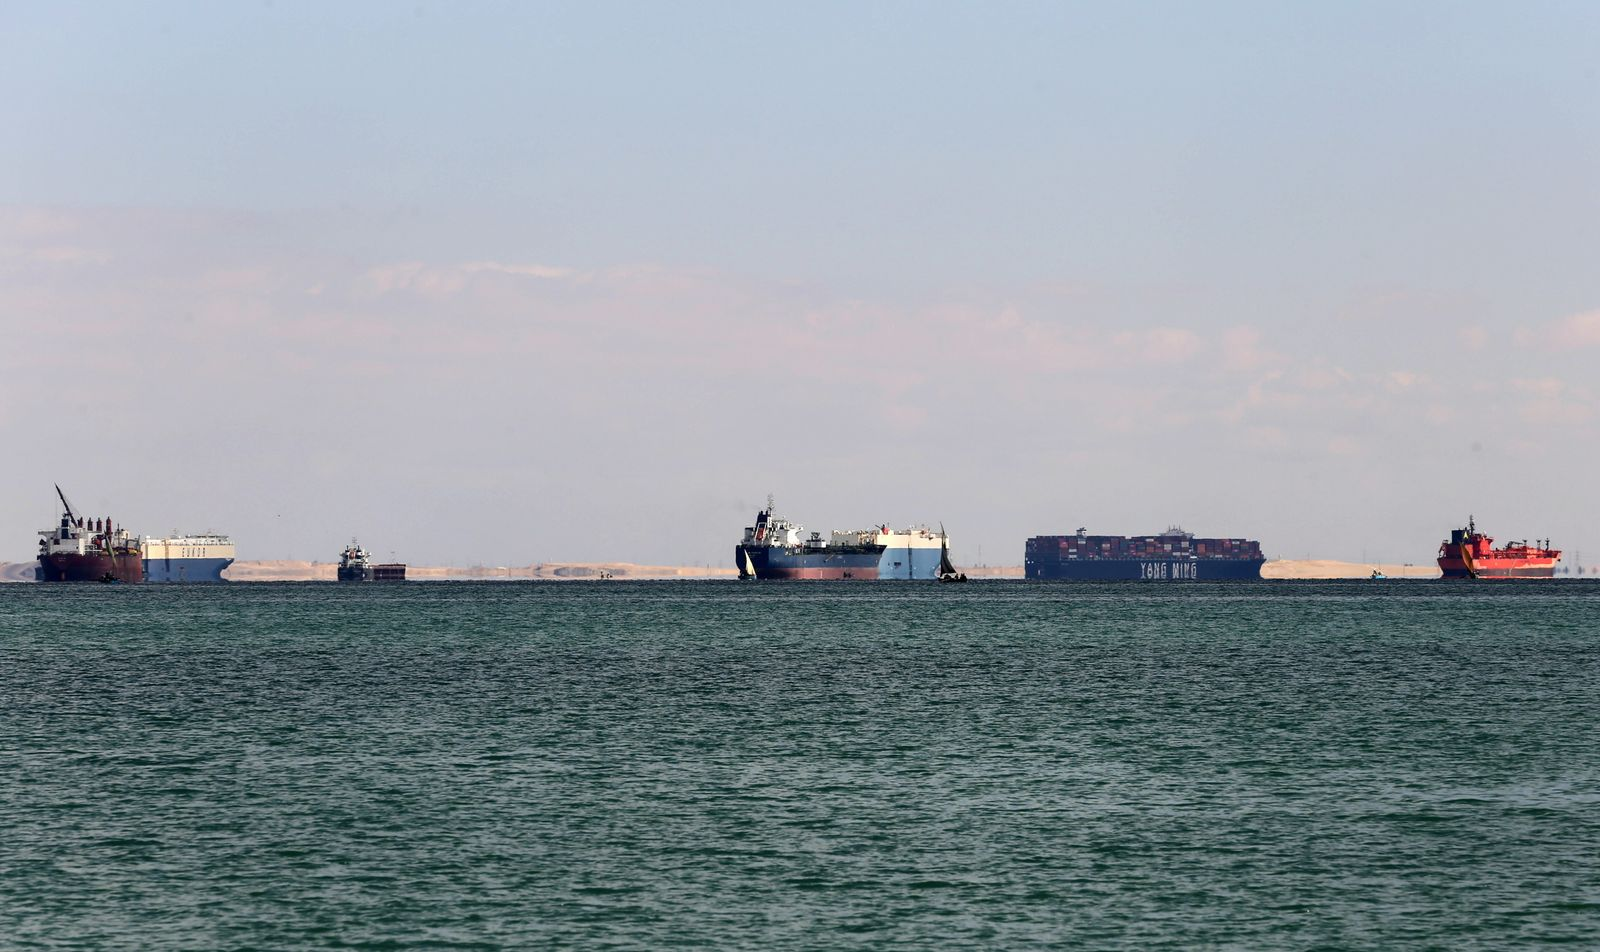 Ships are anchored outside the Suez Canal, near Ismailia